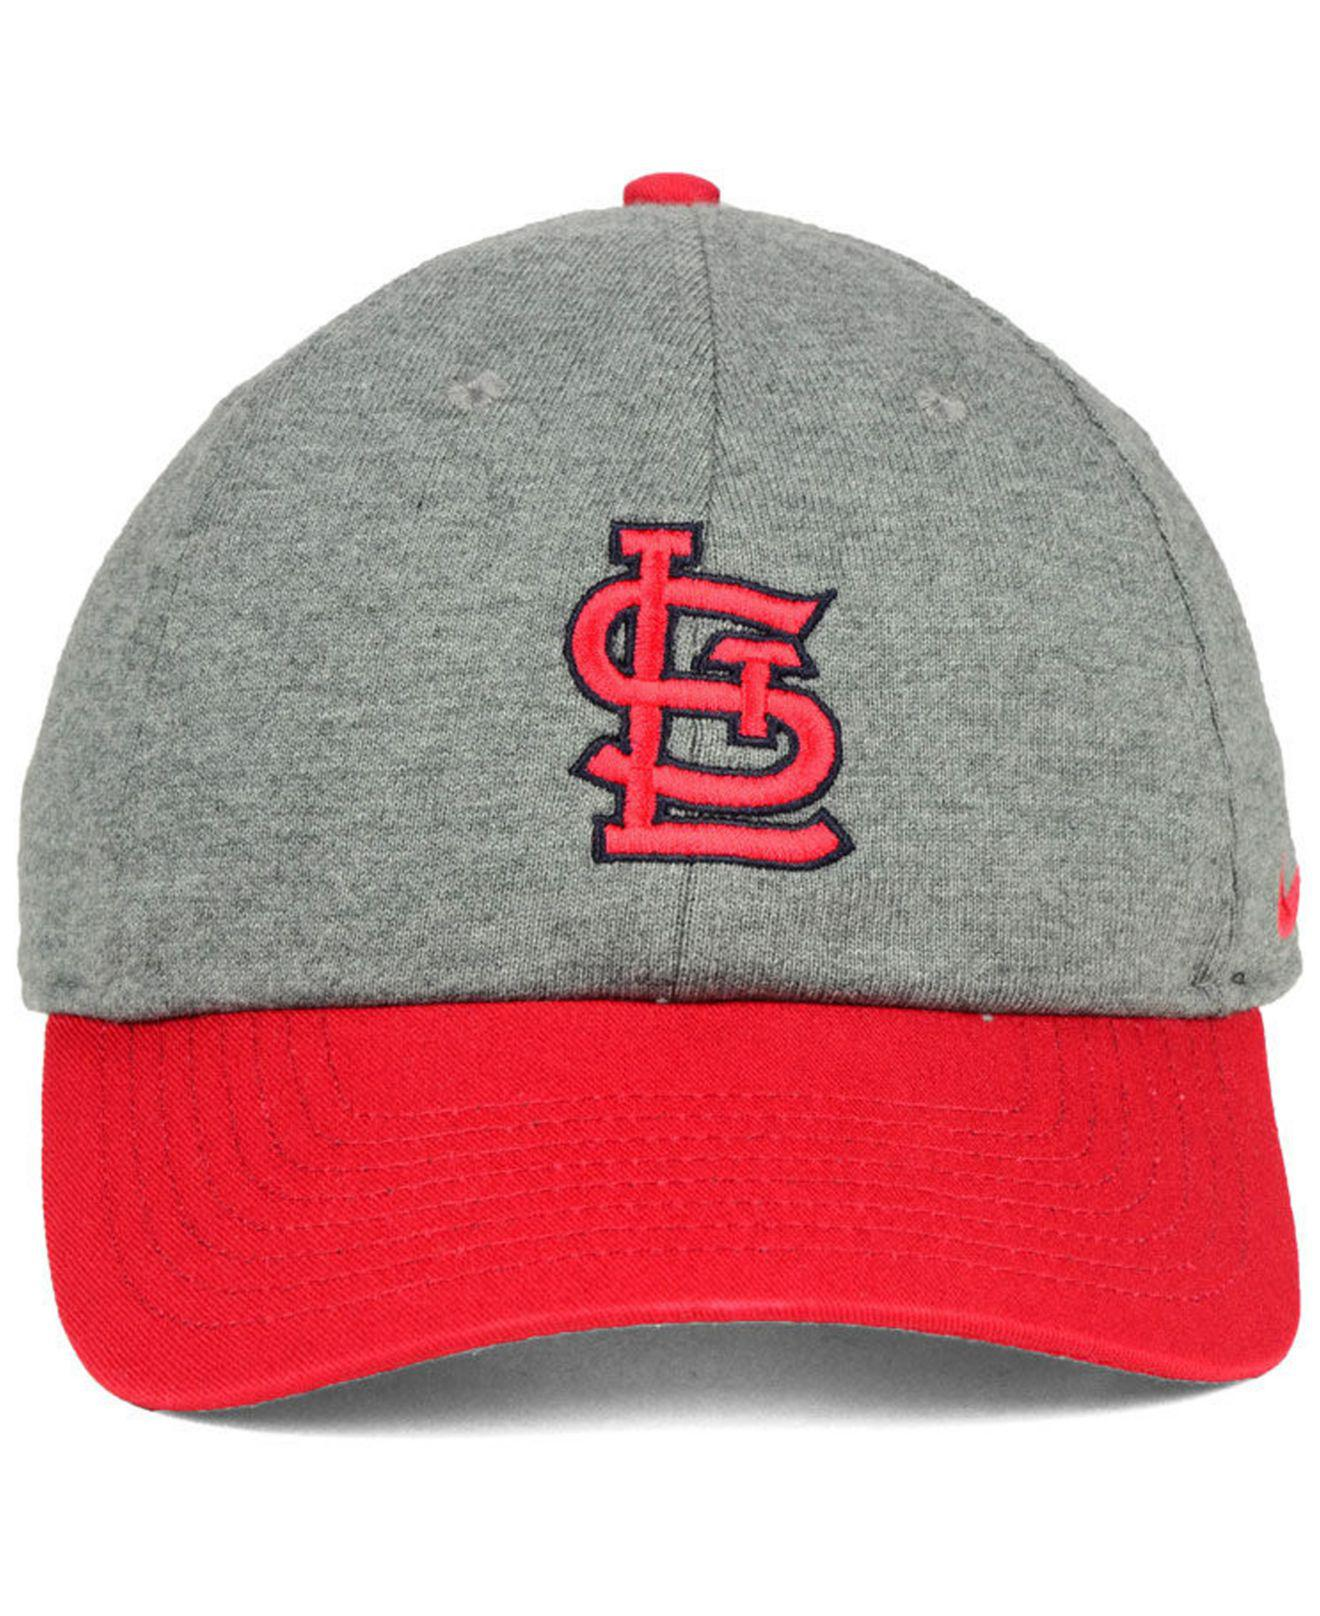 new concept d0121 7b1d1 ... reverse new day snapback cap for men lyst. view fullscreen 90588 4e89d   50% off lyst nike st. louis cardinals 2 tone heather cap for men ce3bf